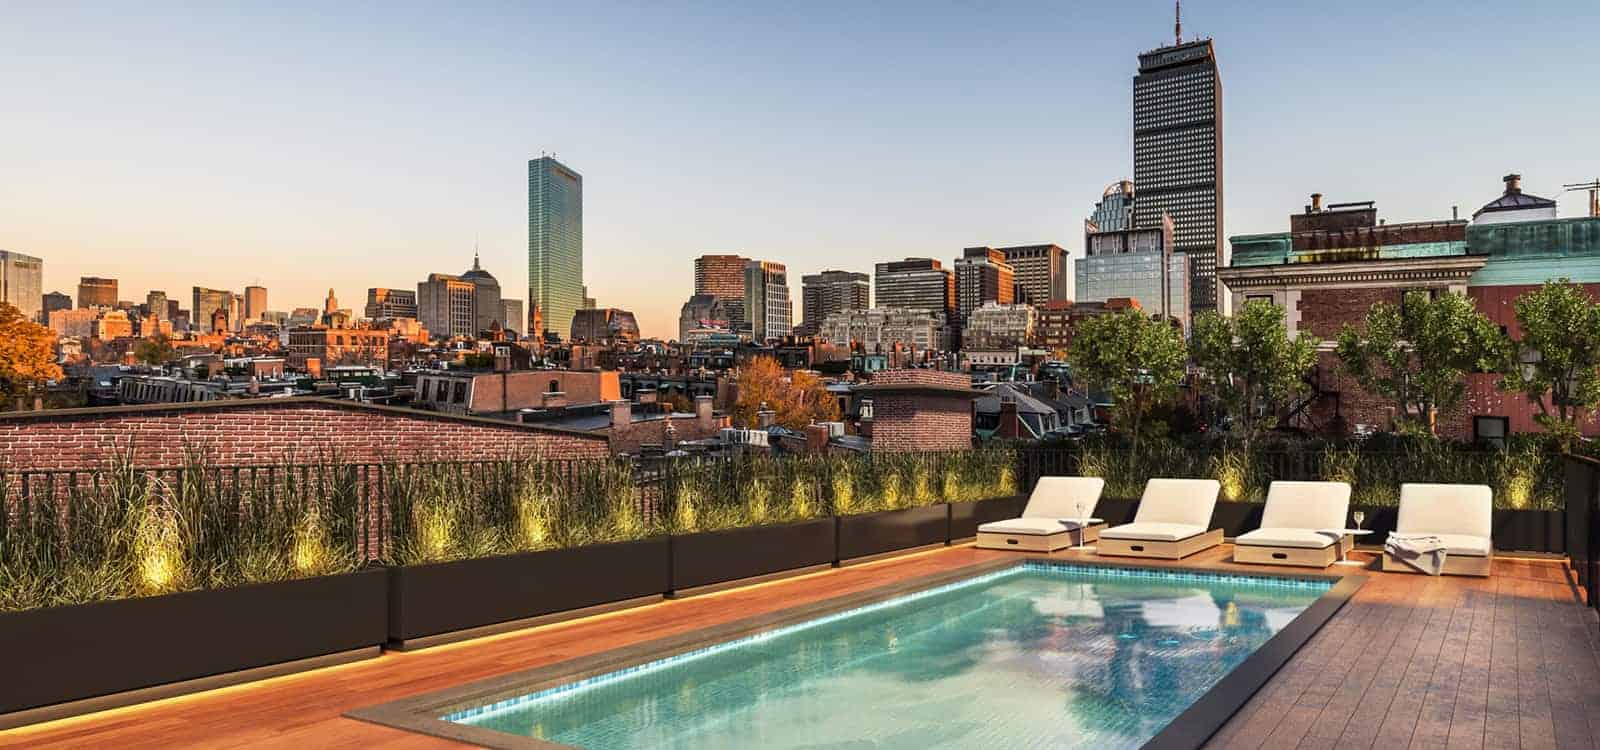 Swimming pool and city skyline view